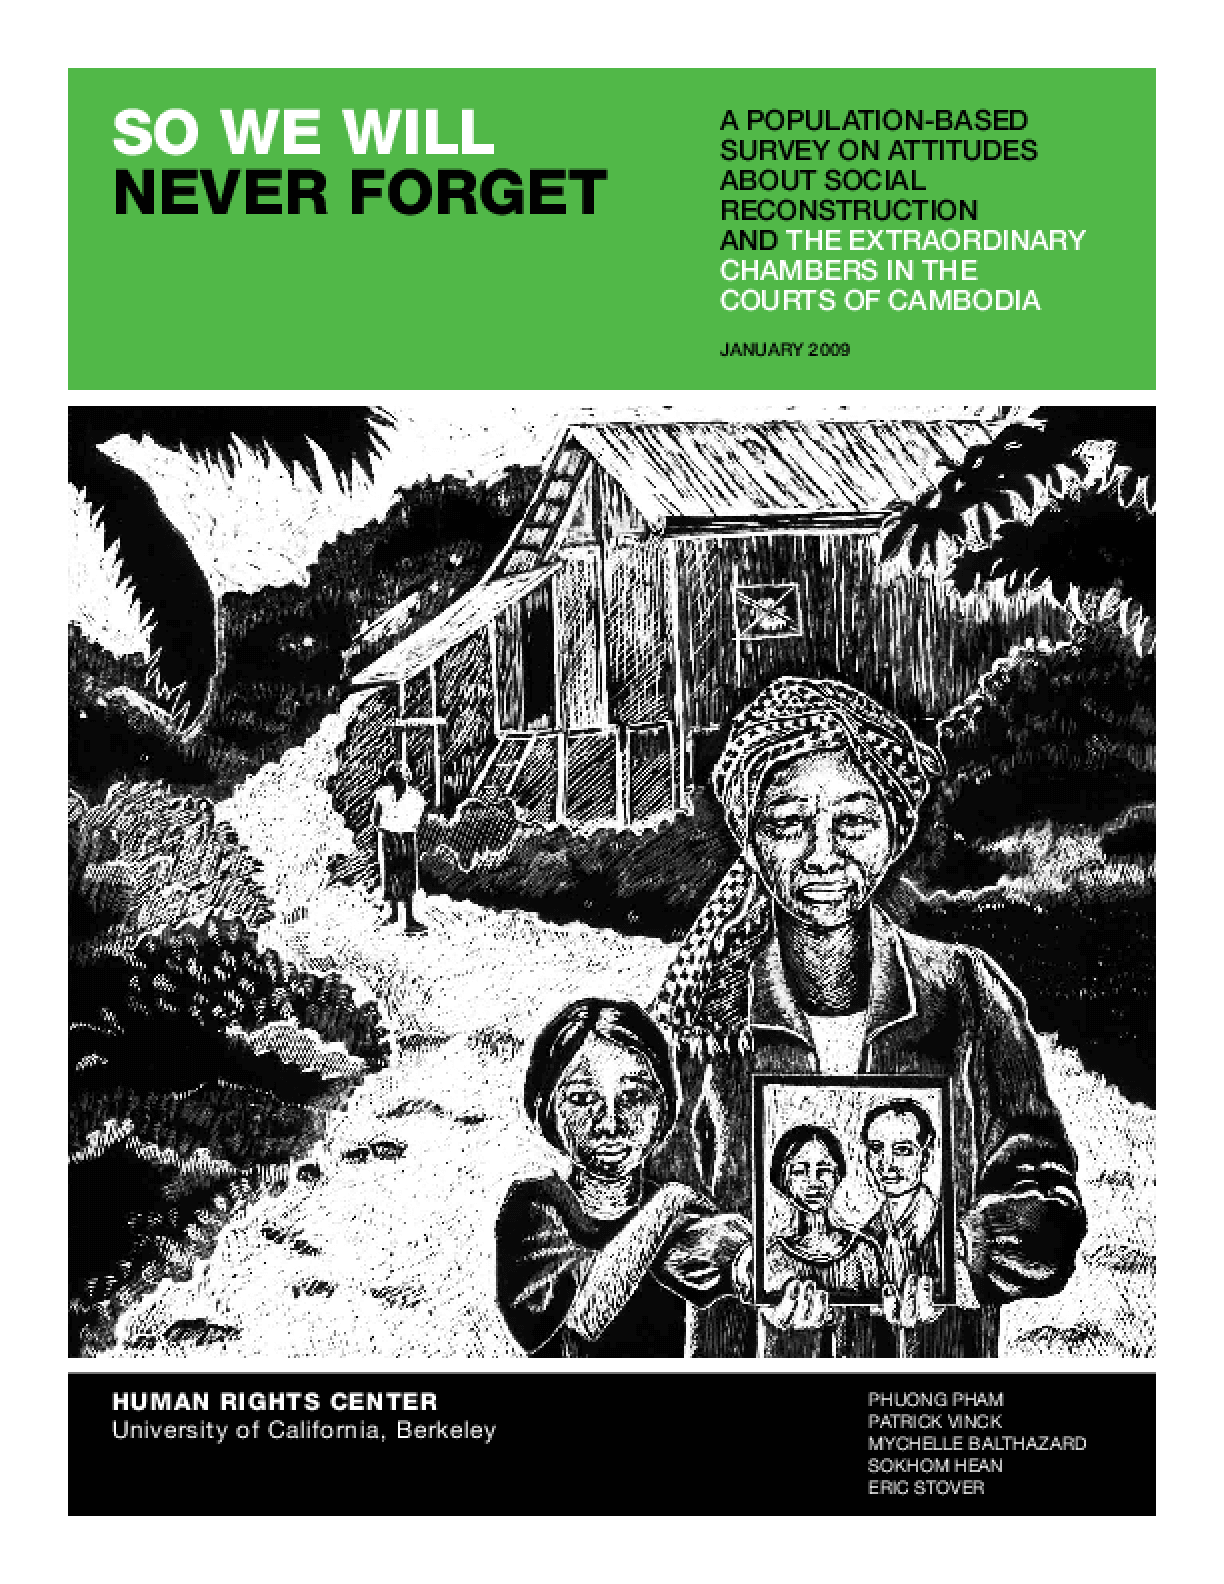 So We Will Never Forget: A Population-Based Survey on Attitudes About Social Reconstruction and the Extraordinary Chambers in the Courts of Cambodia